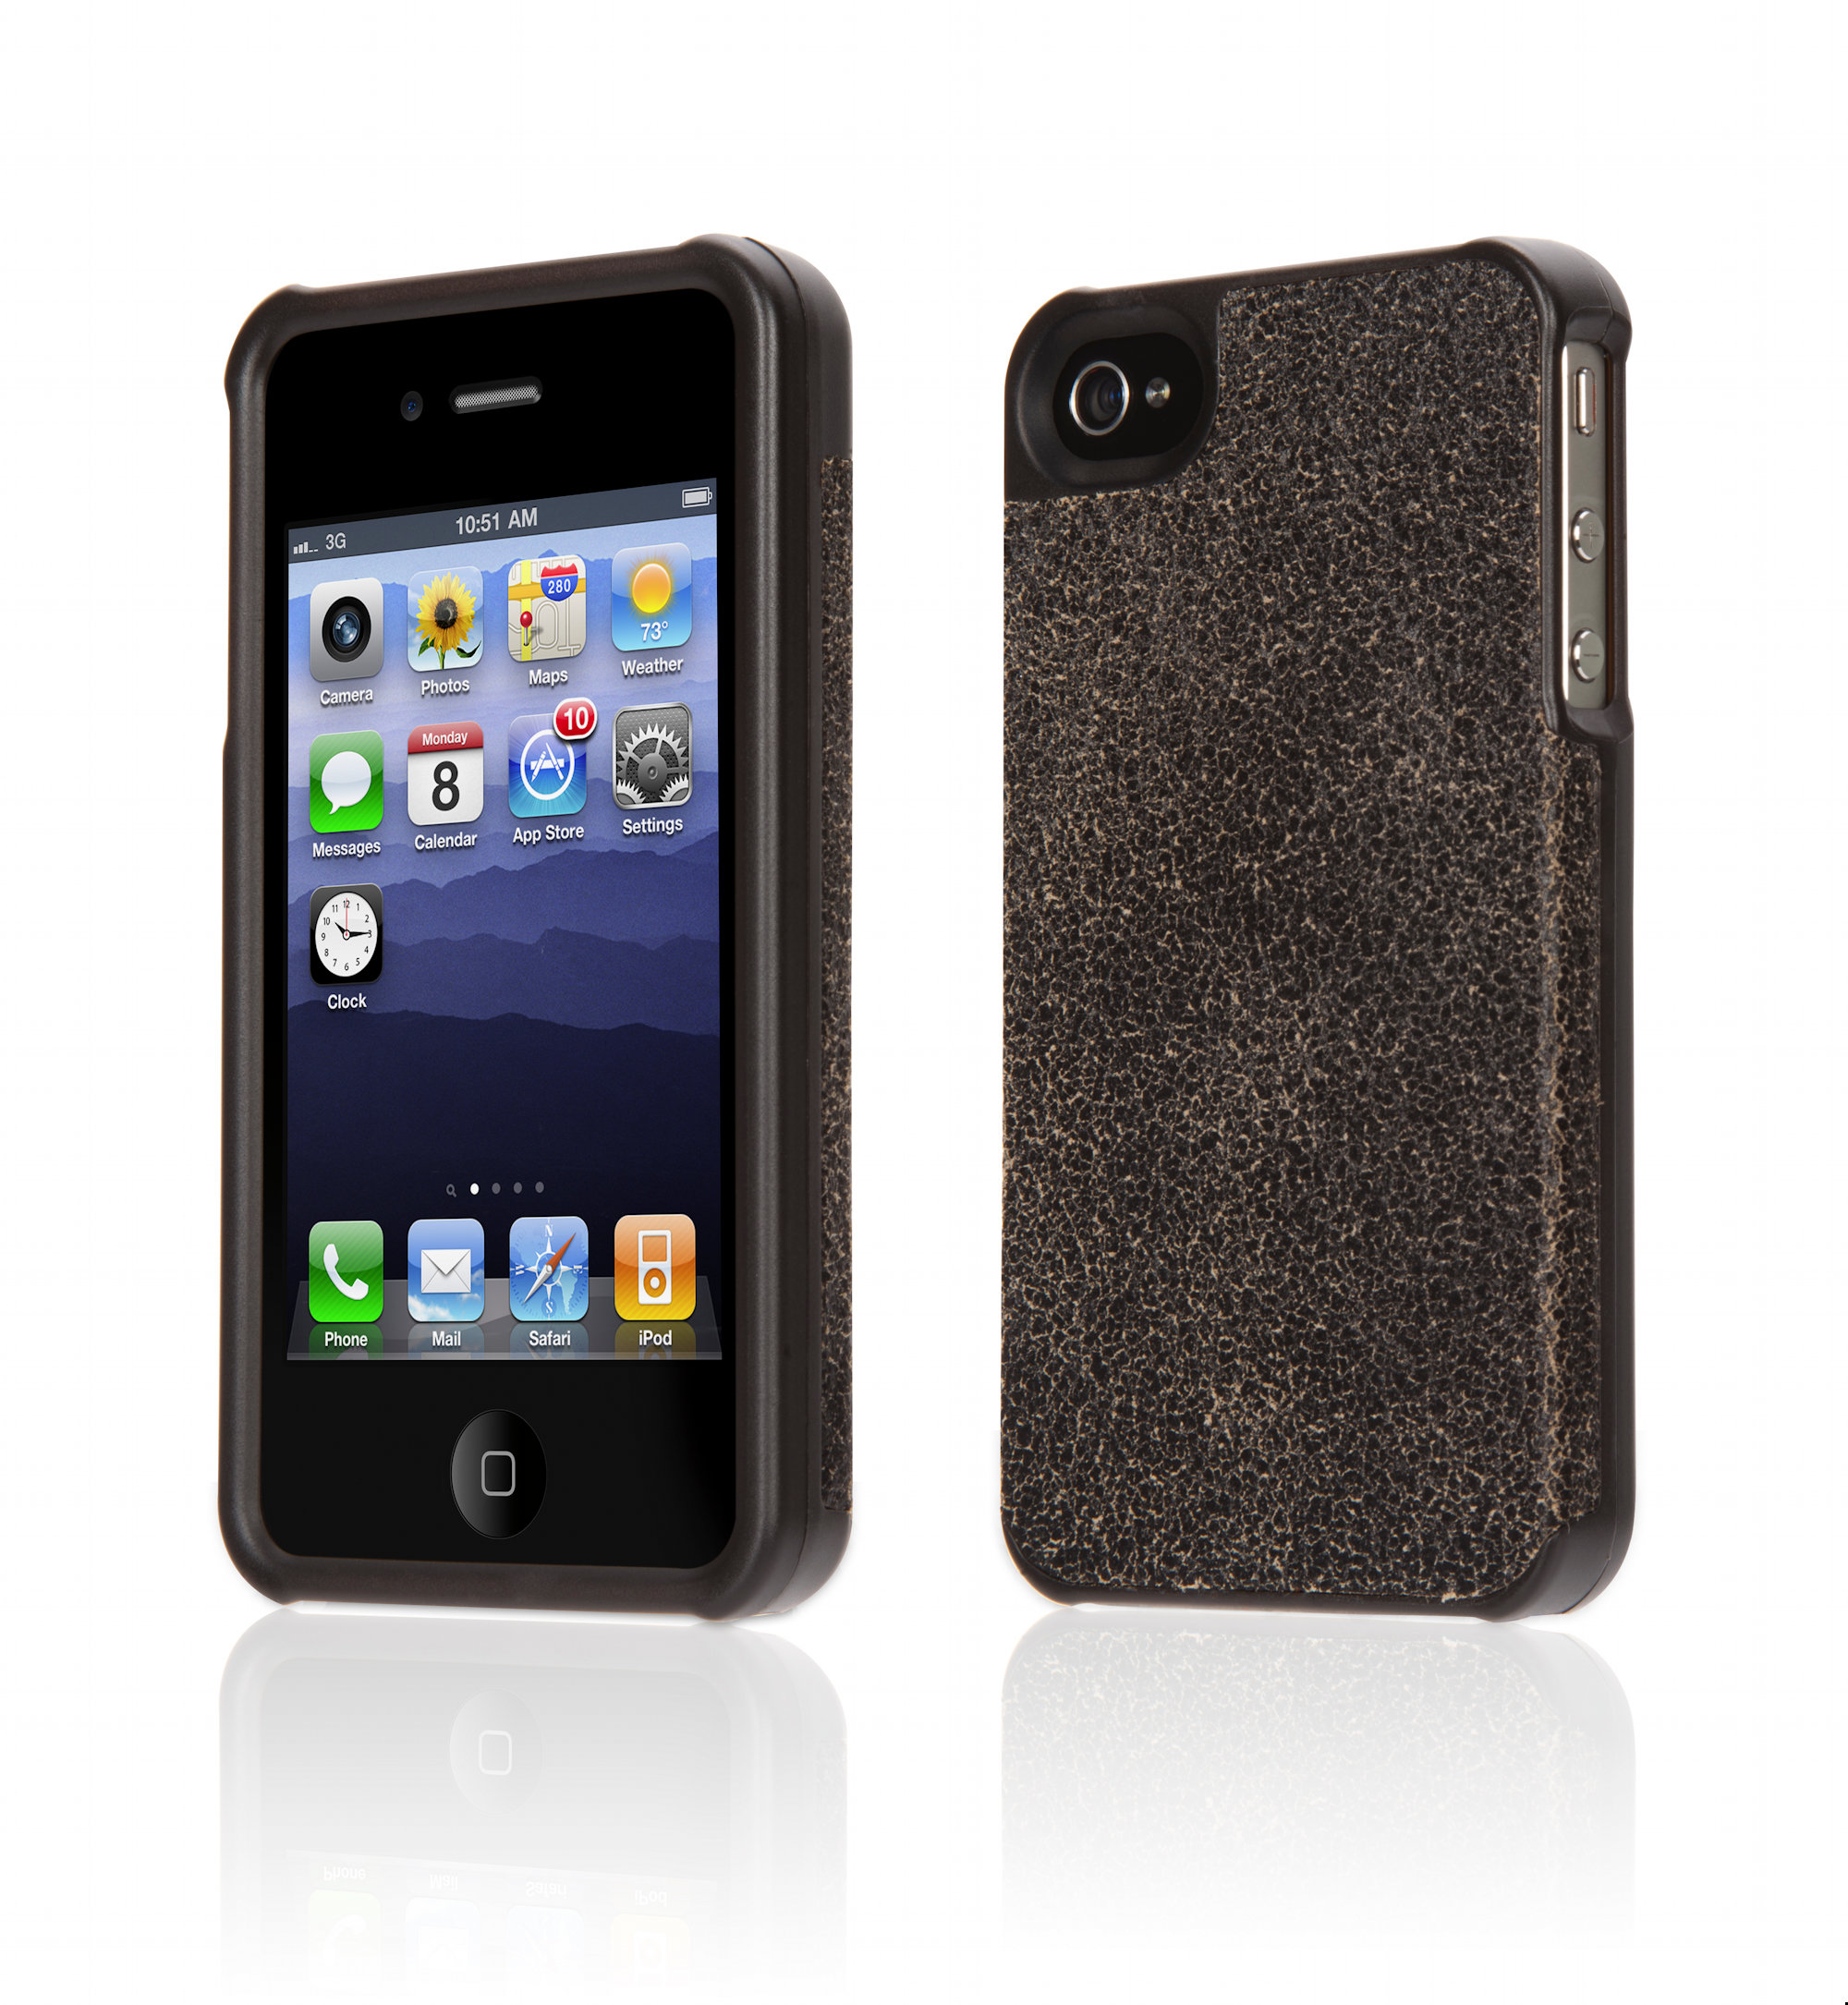 iphone 4 s price elan form distressed for iphone 4 4s price in pakistan at 7226